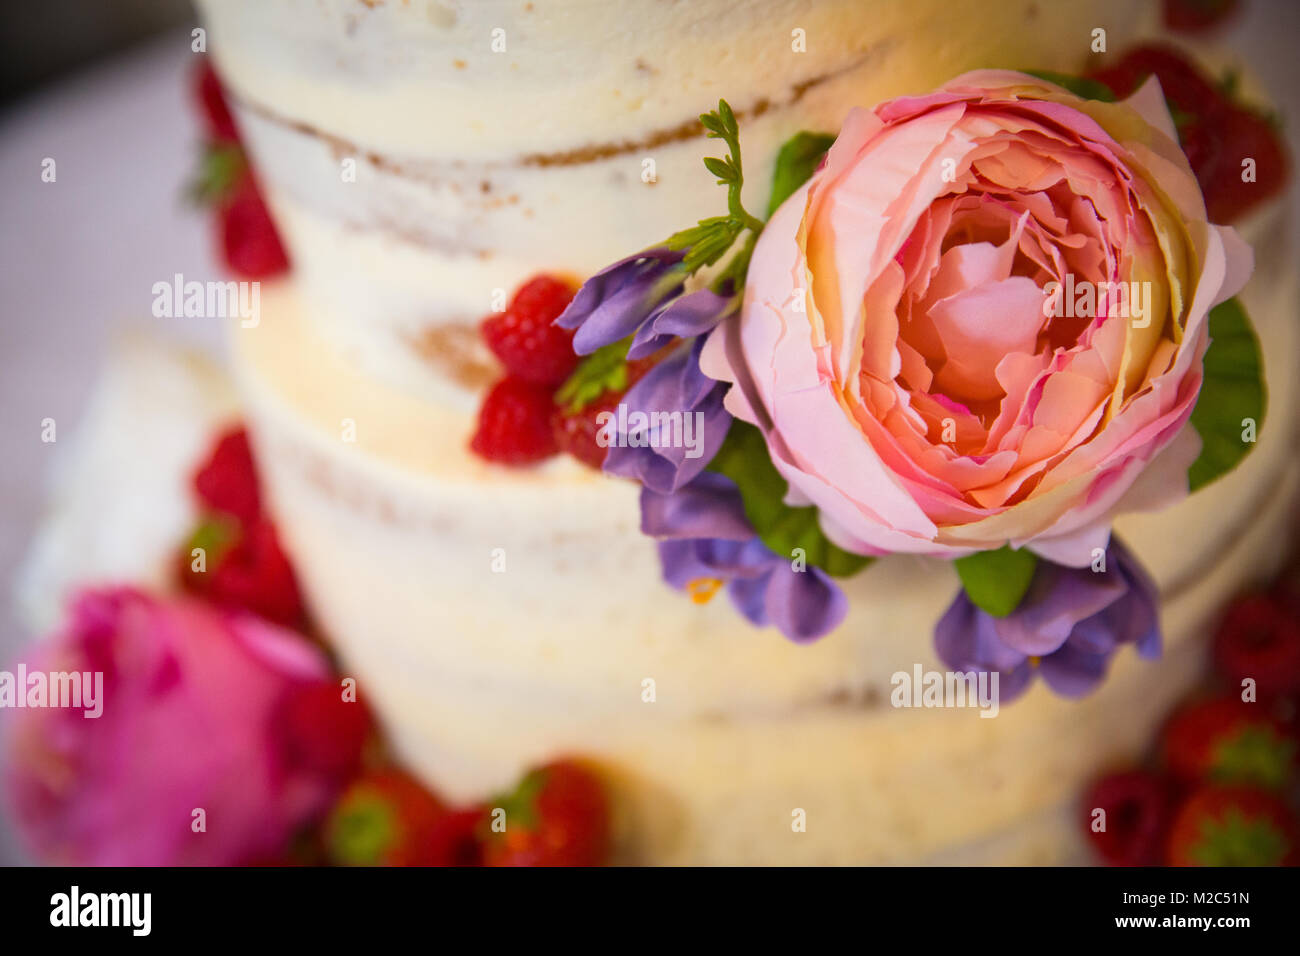 Fresh flowers and fruit on tiered celebration cake, close-up - Stock Image